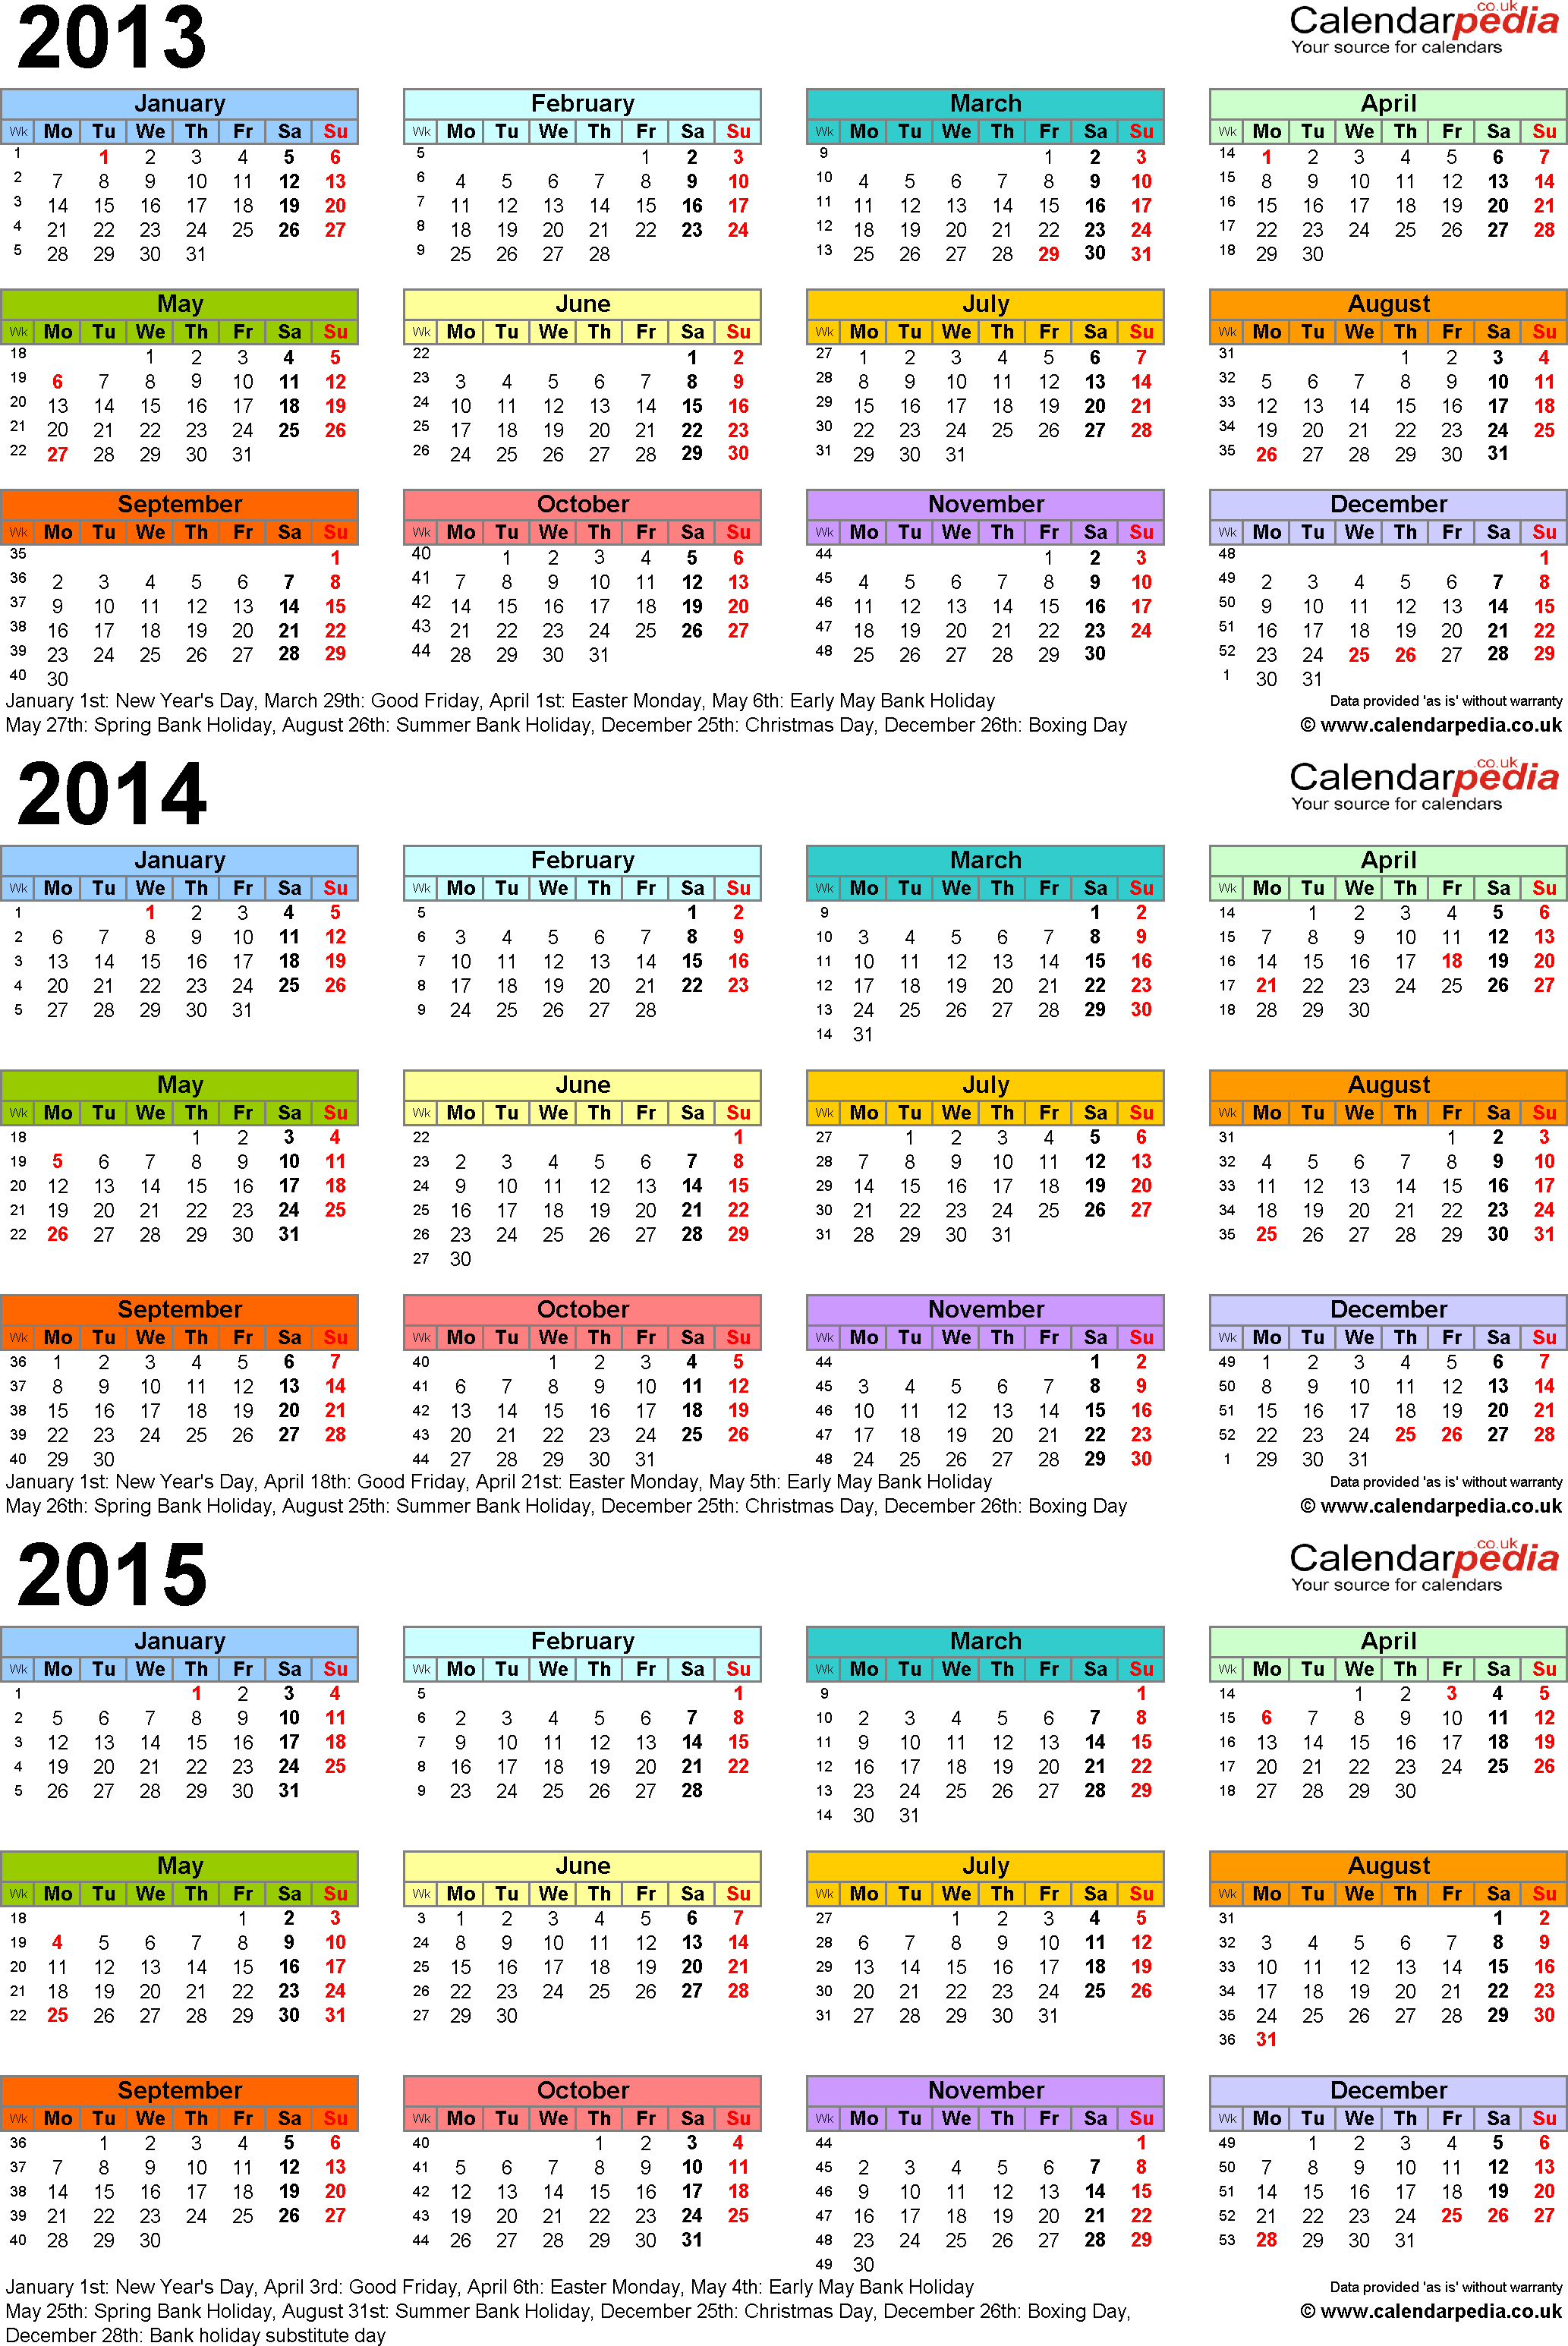 Download Template 3: Word template for three year calendar 2013-2015 in colour (portrait orientation, 1 page, A4)